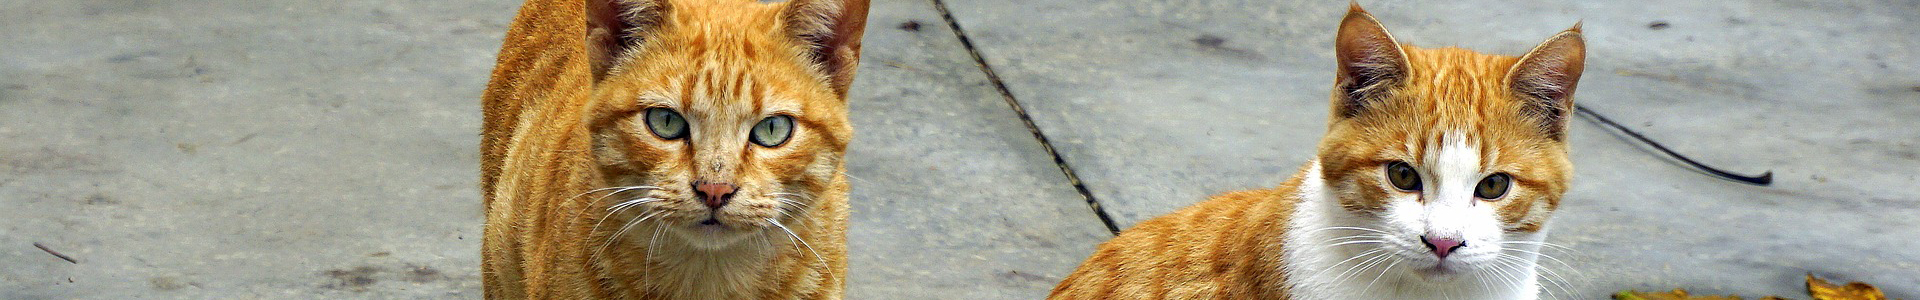 Two outdoor orange tabbies, one with white on his face and chest, look at the viewer from a concrete background.